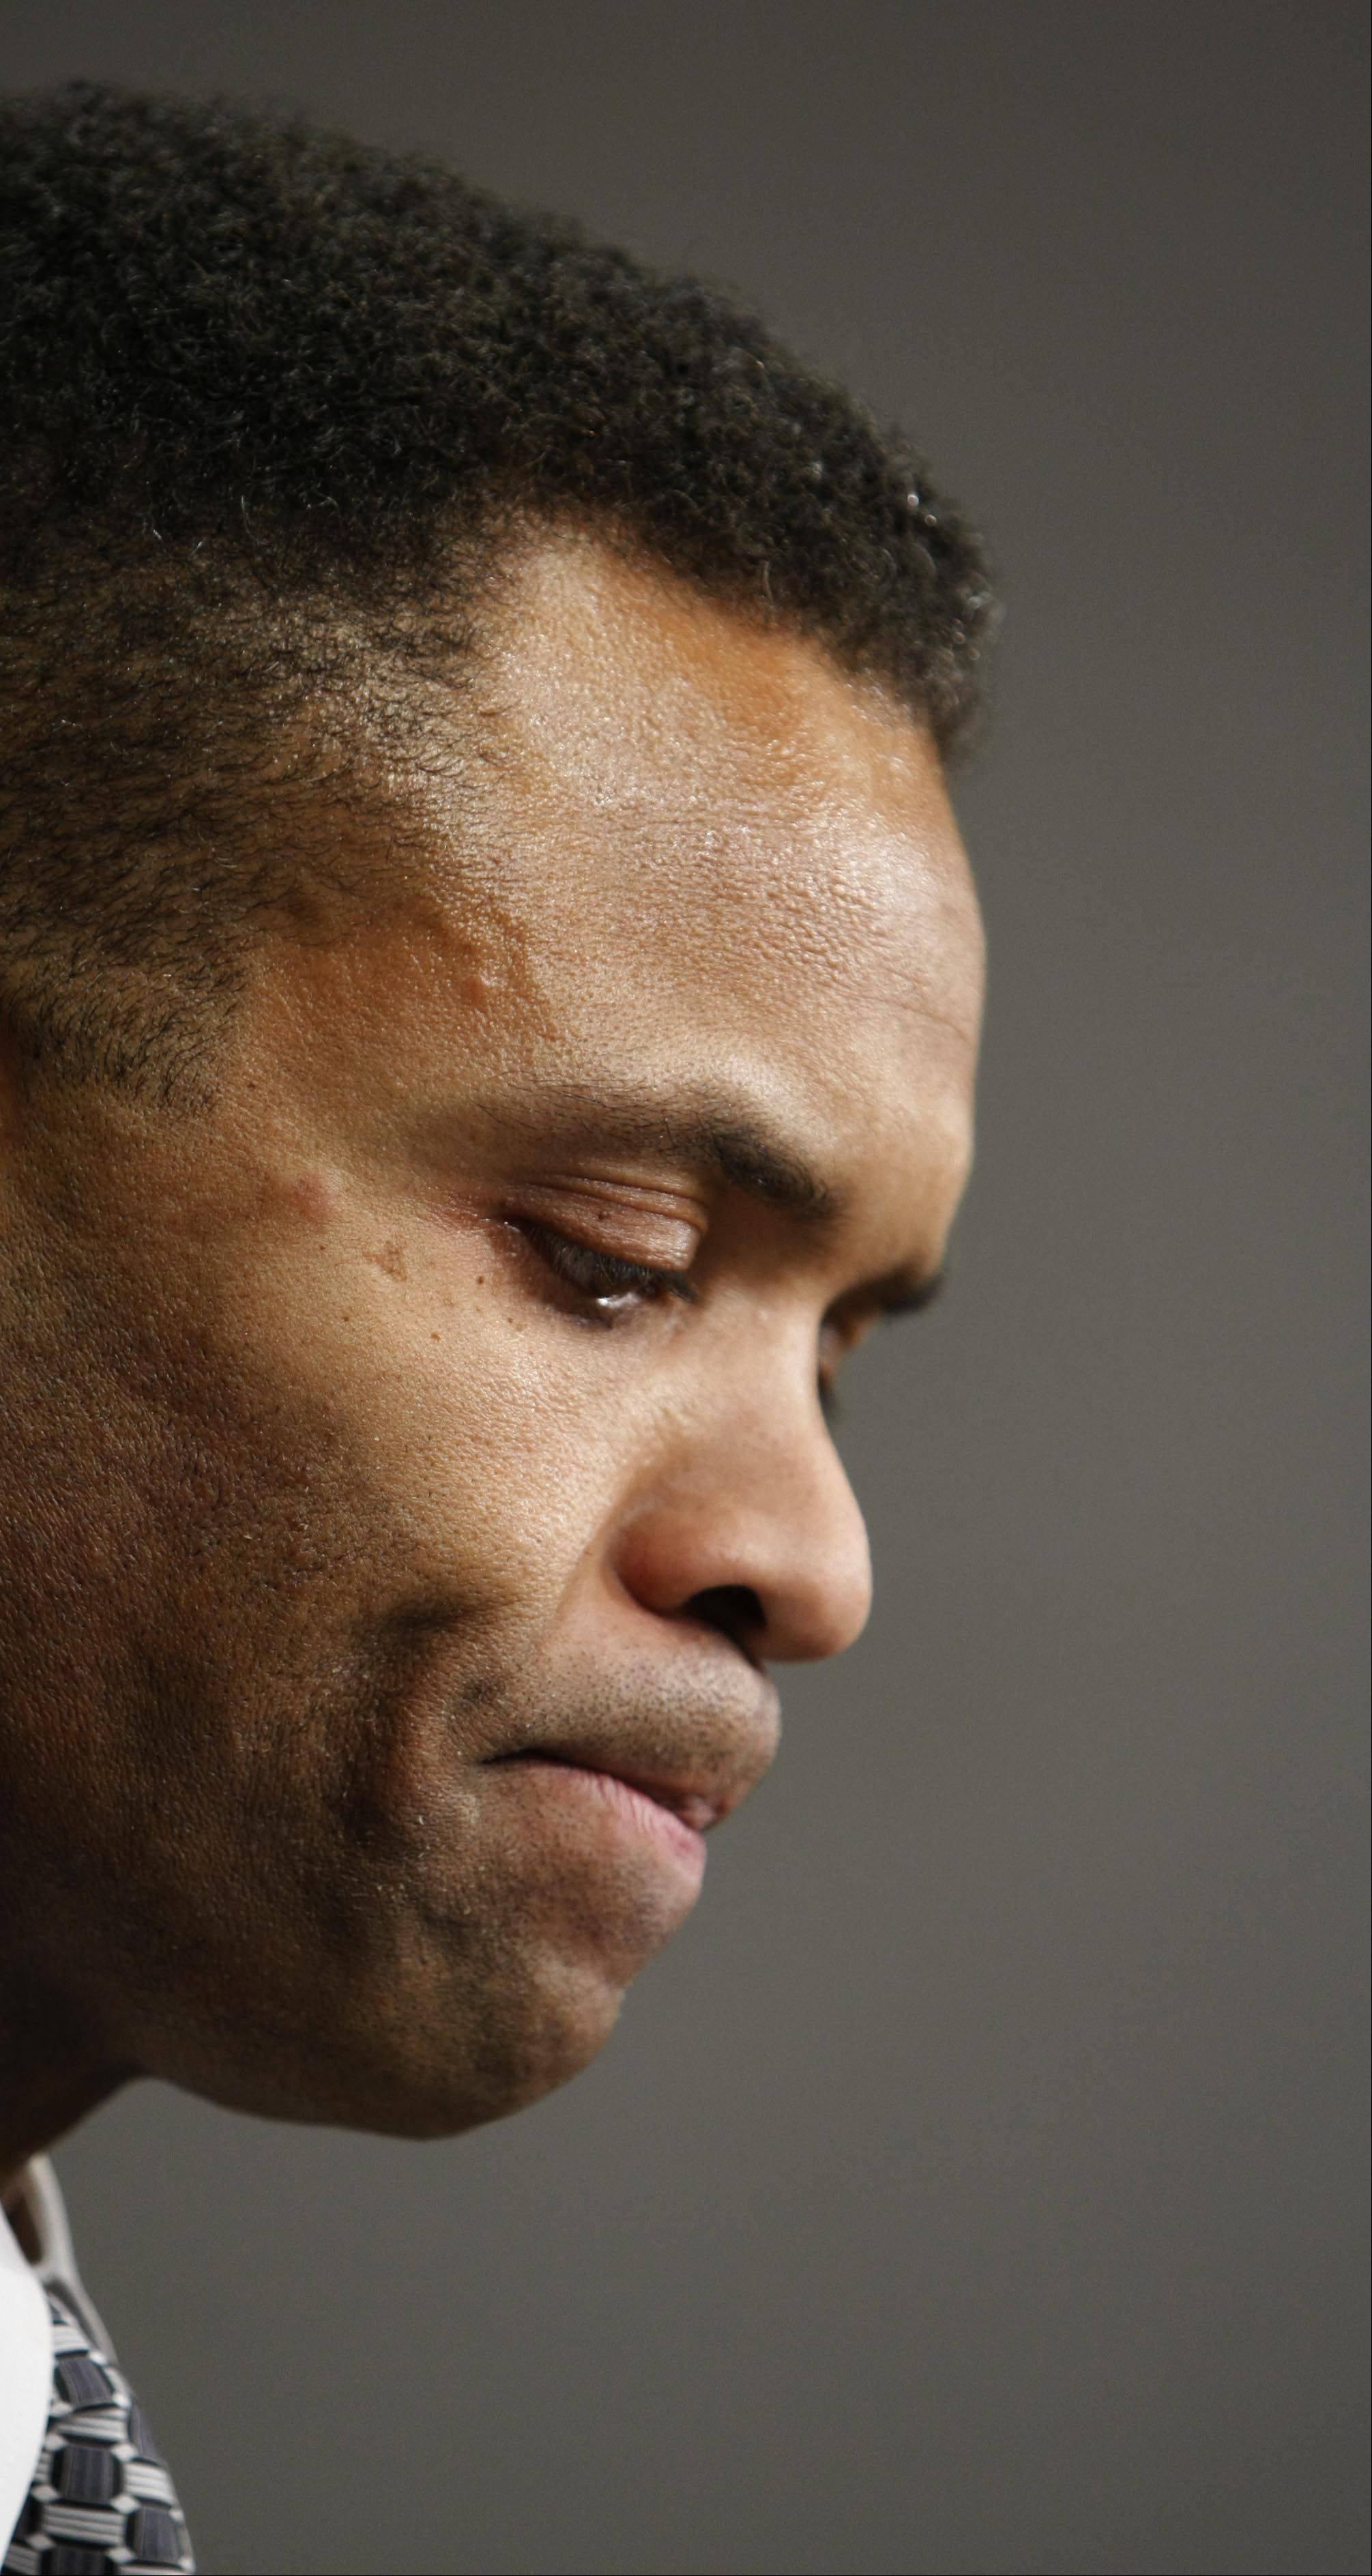 Rep. Jesse Jackson, Jr., D-Ill., seen here during a news conference on Capitol Hill in Washington, Dec. 10, 2008, is facing a 'debilitating' depression, according to comments his wife, Sandi Jackson made to the Sun-Times.